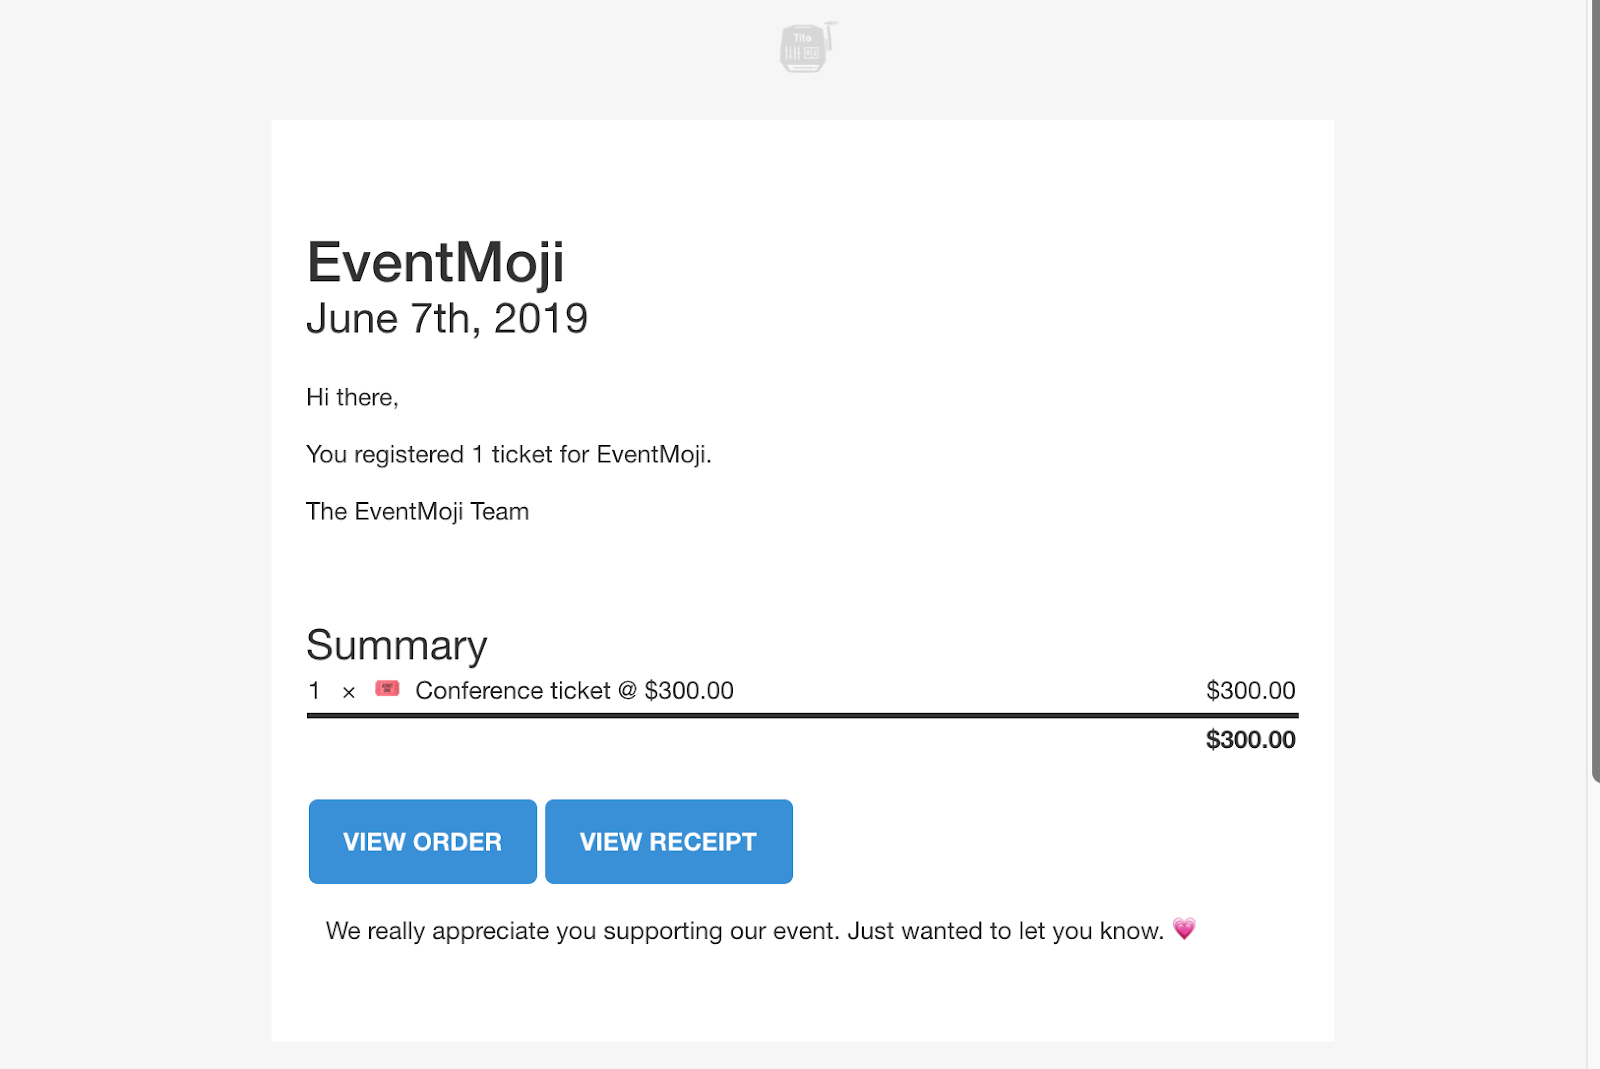 Confirmation email with a custom footer saying: We really appreciate you supporting our event. Just wanted to let you know. ?